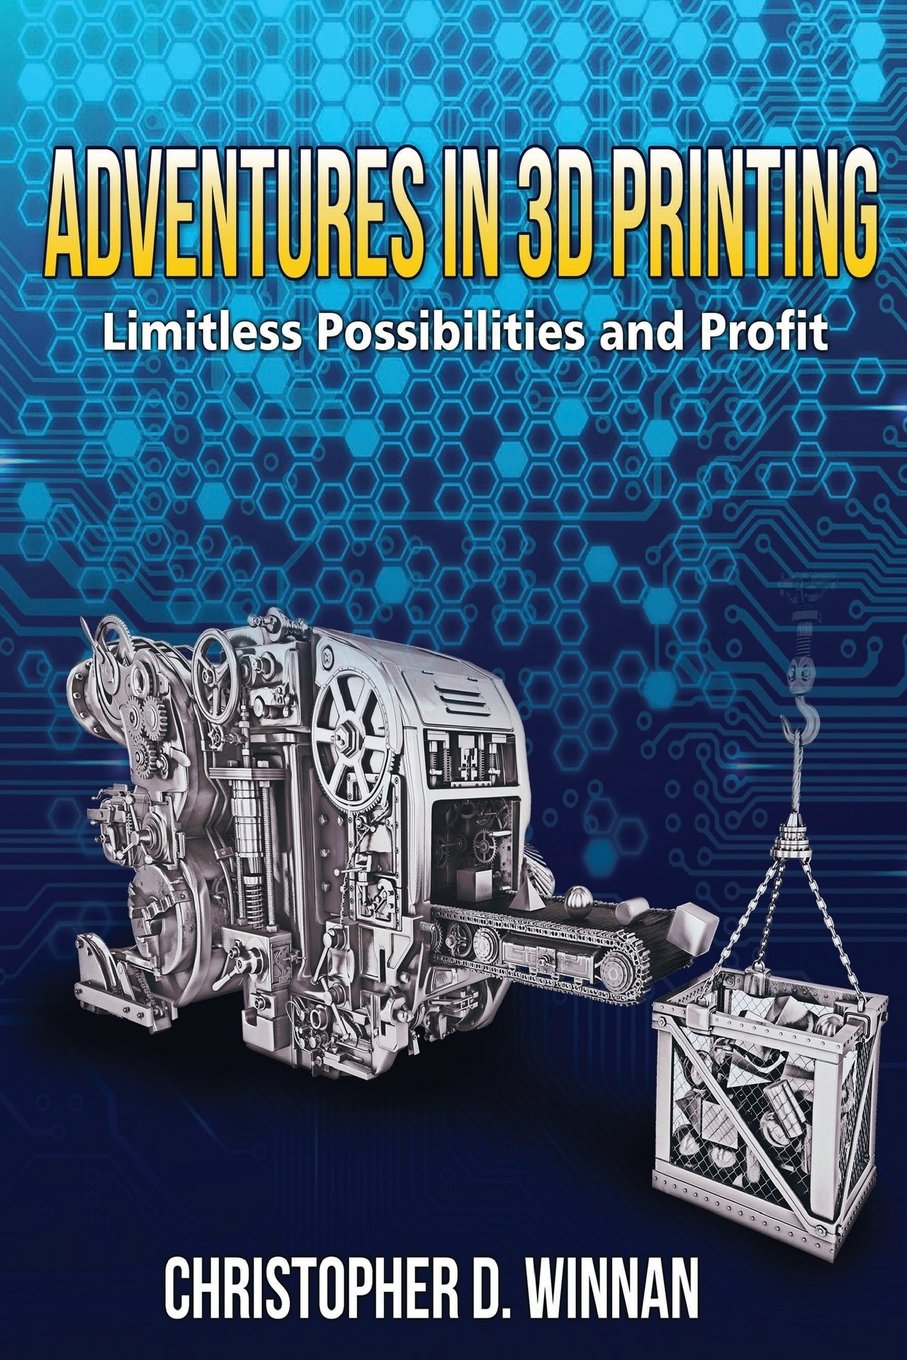 Download Adventures in 3D Printing: Limitless Possibilities and Profit Using 3D Printers pdf epub